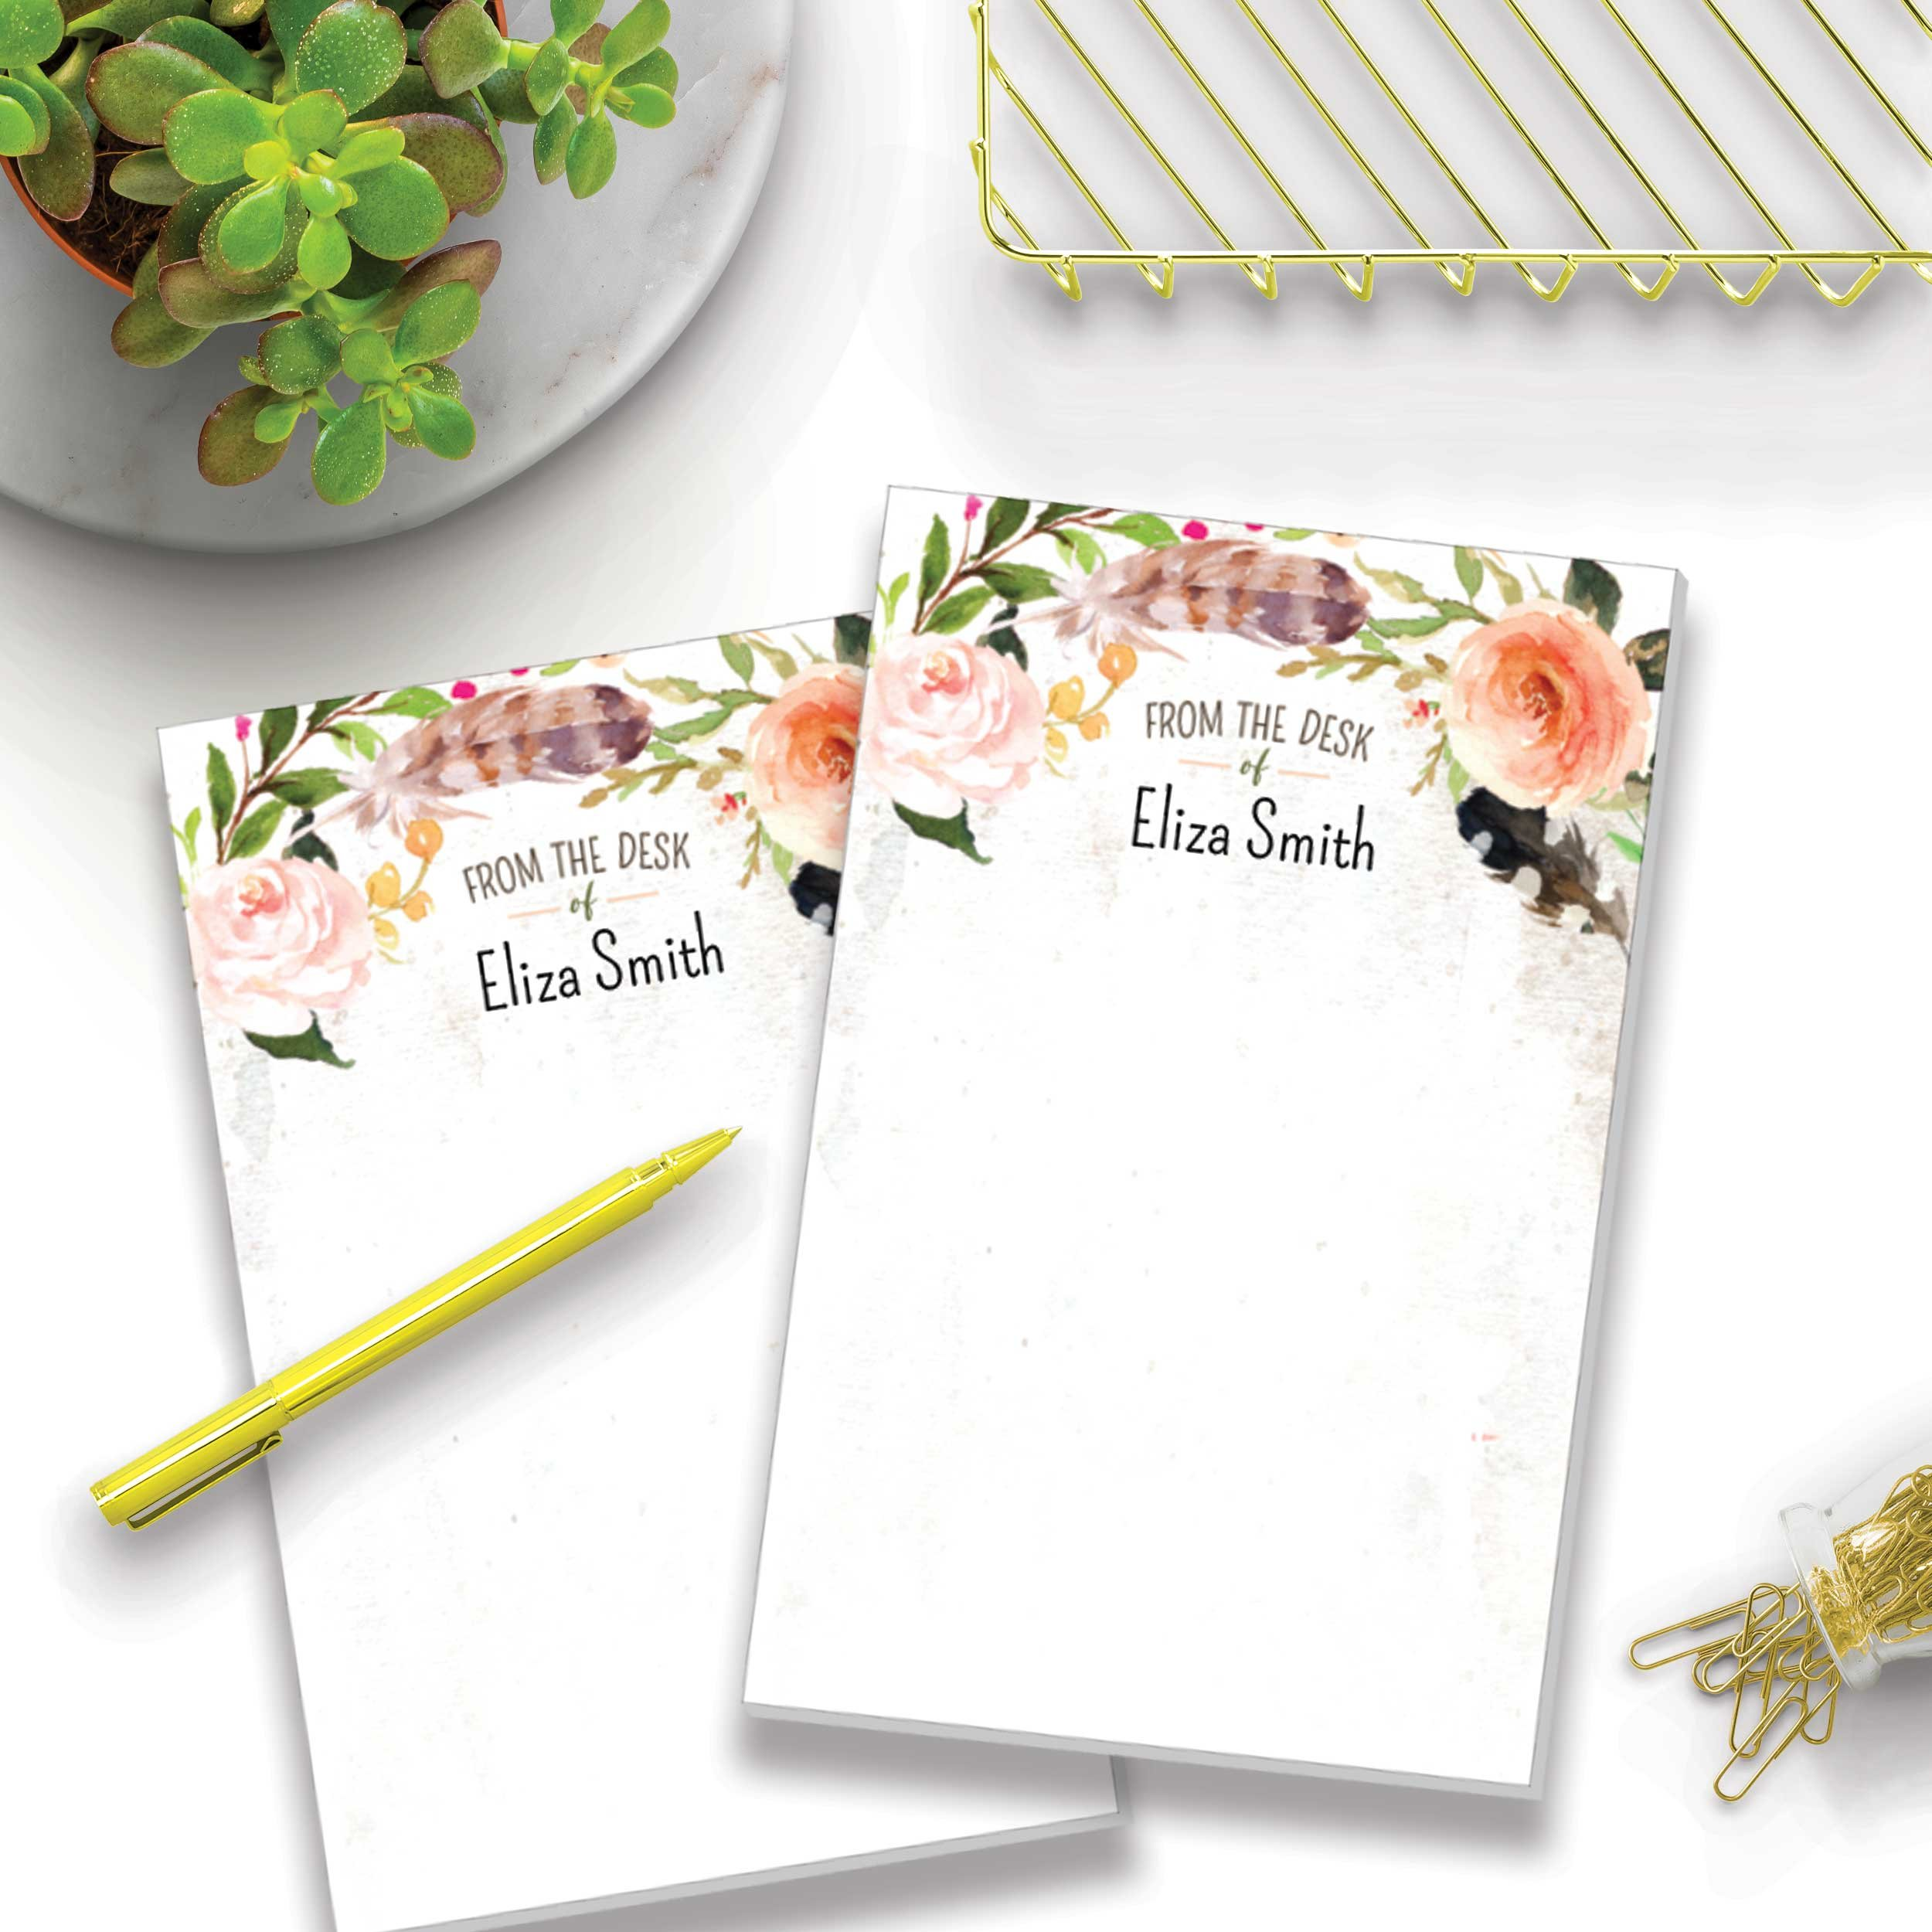 Garden Oasis Set of 2 Personalized Memo Pads/Notepads, 2 pads - 50 sheets per pad. Available in 5.5'' x 8.5'' or 4'' x 5.5''. Made in the USA.